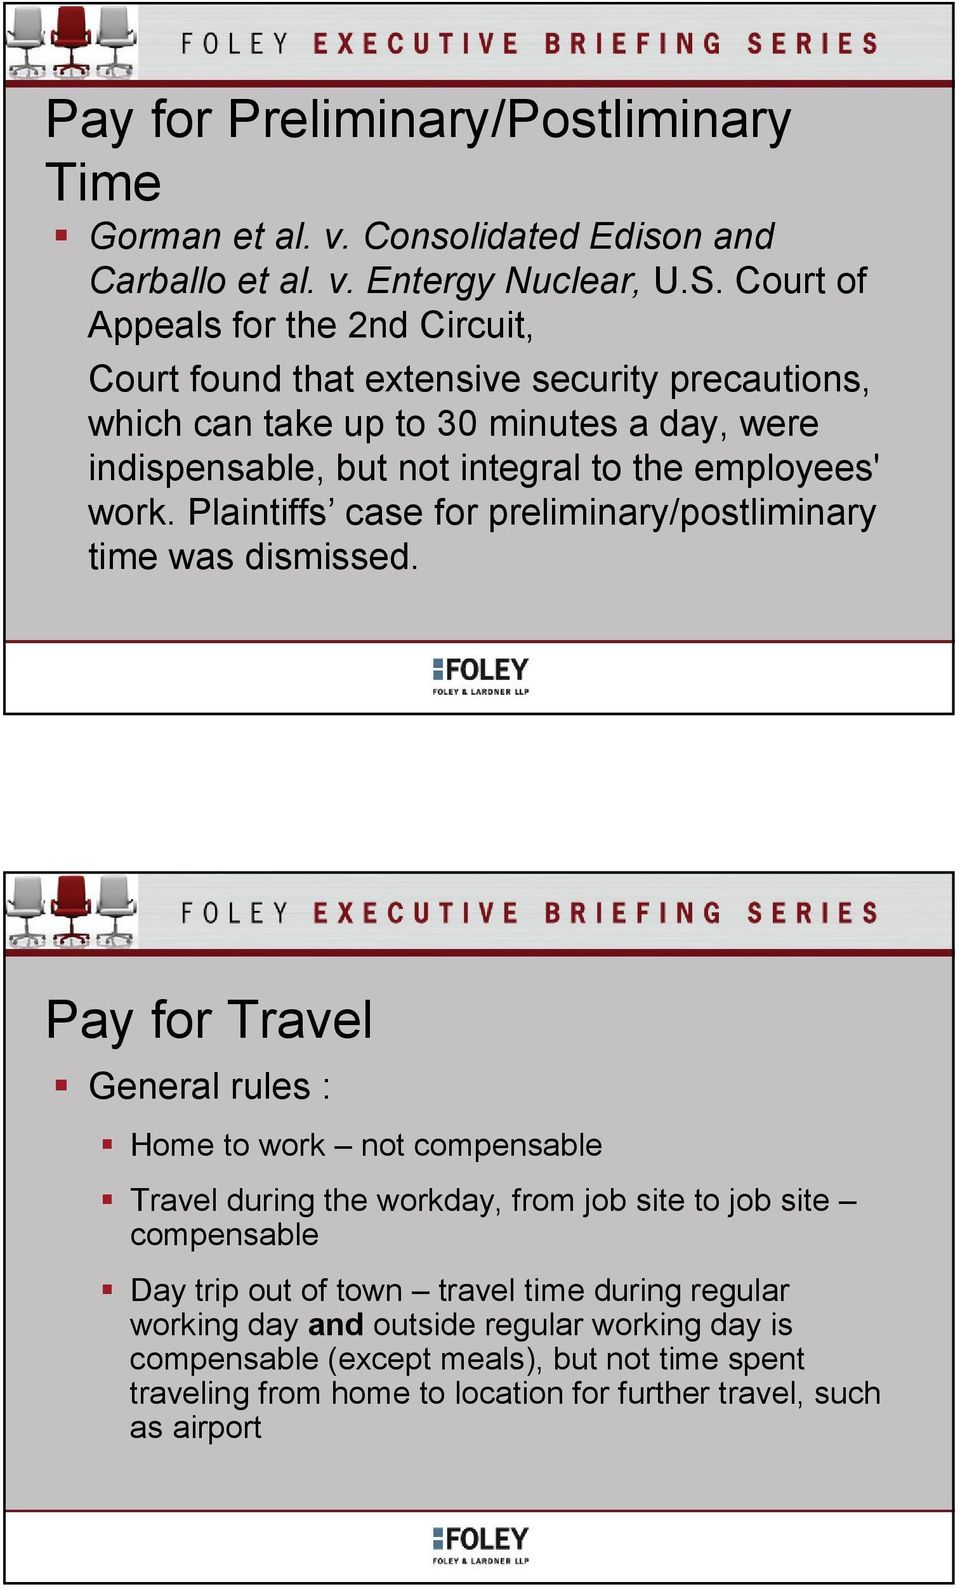 employees' work. Plaintiffs case for preliminary/postliminary time was dismissed.